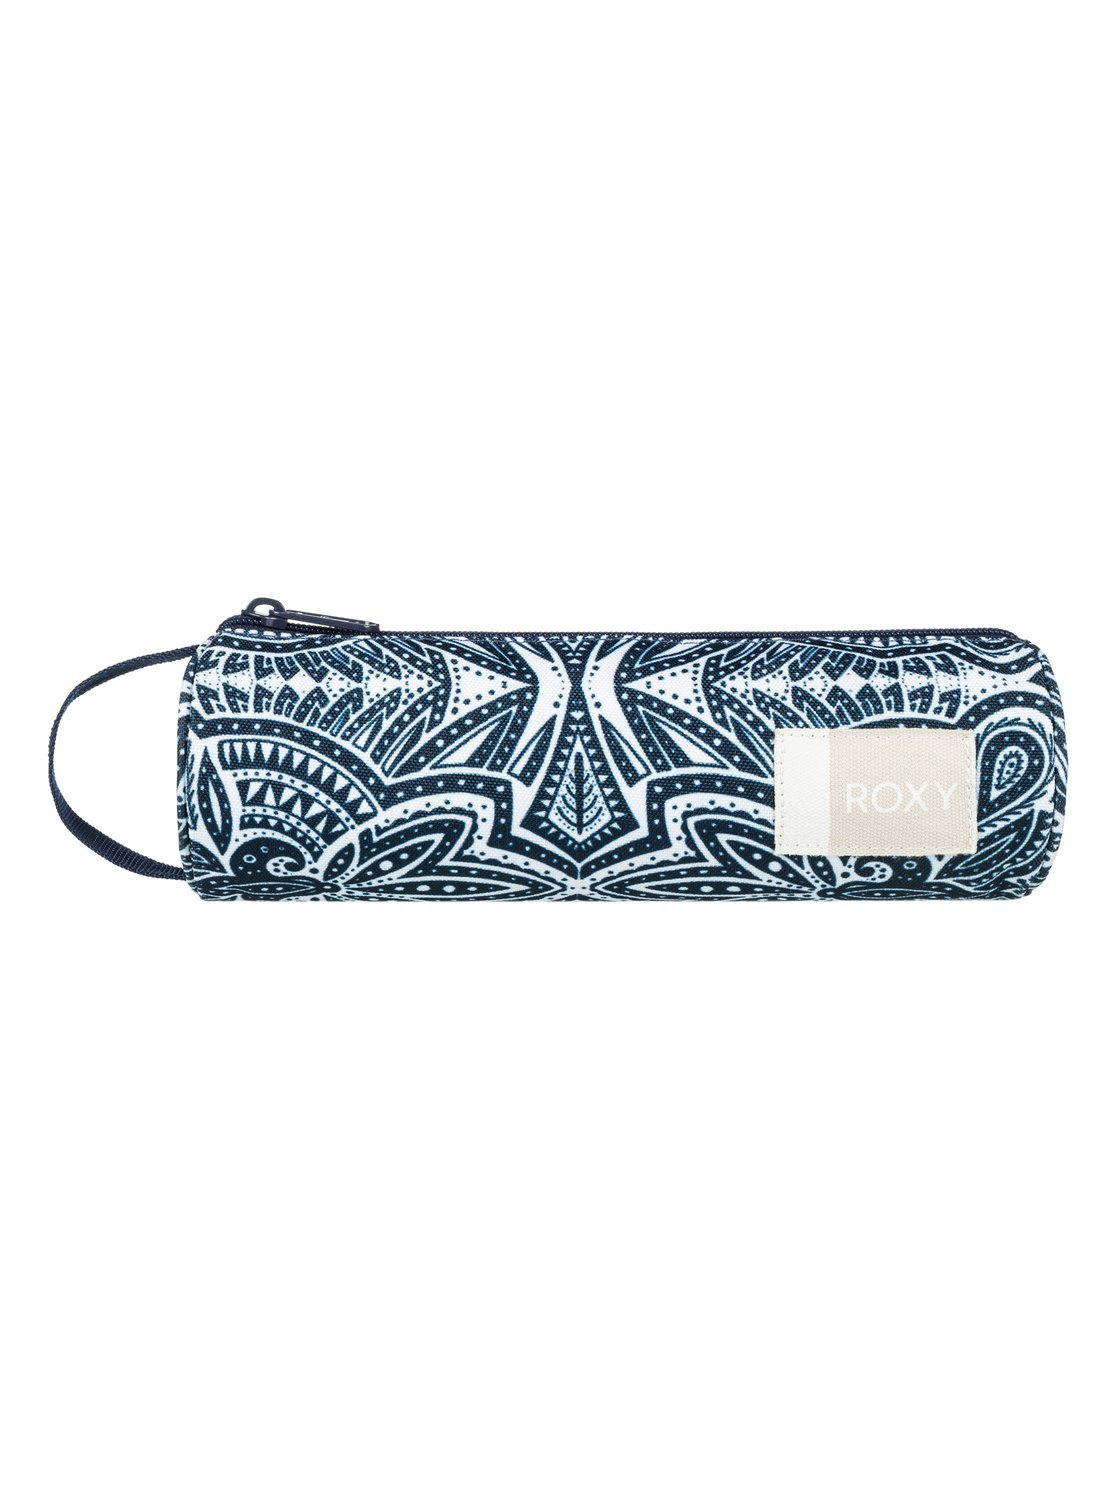 Roxy ERJAA0339 Off The Wall J Scsp Estuches, 25 cm, Azul